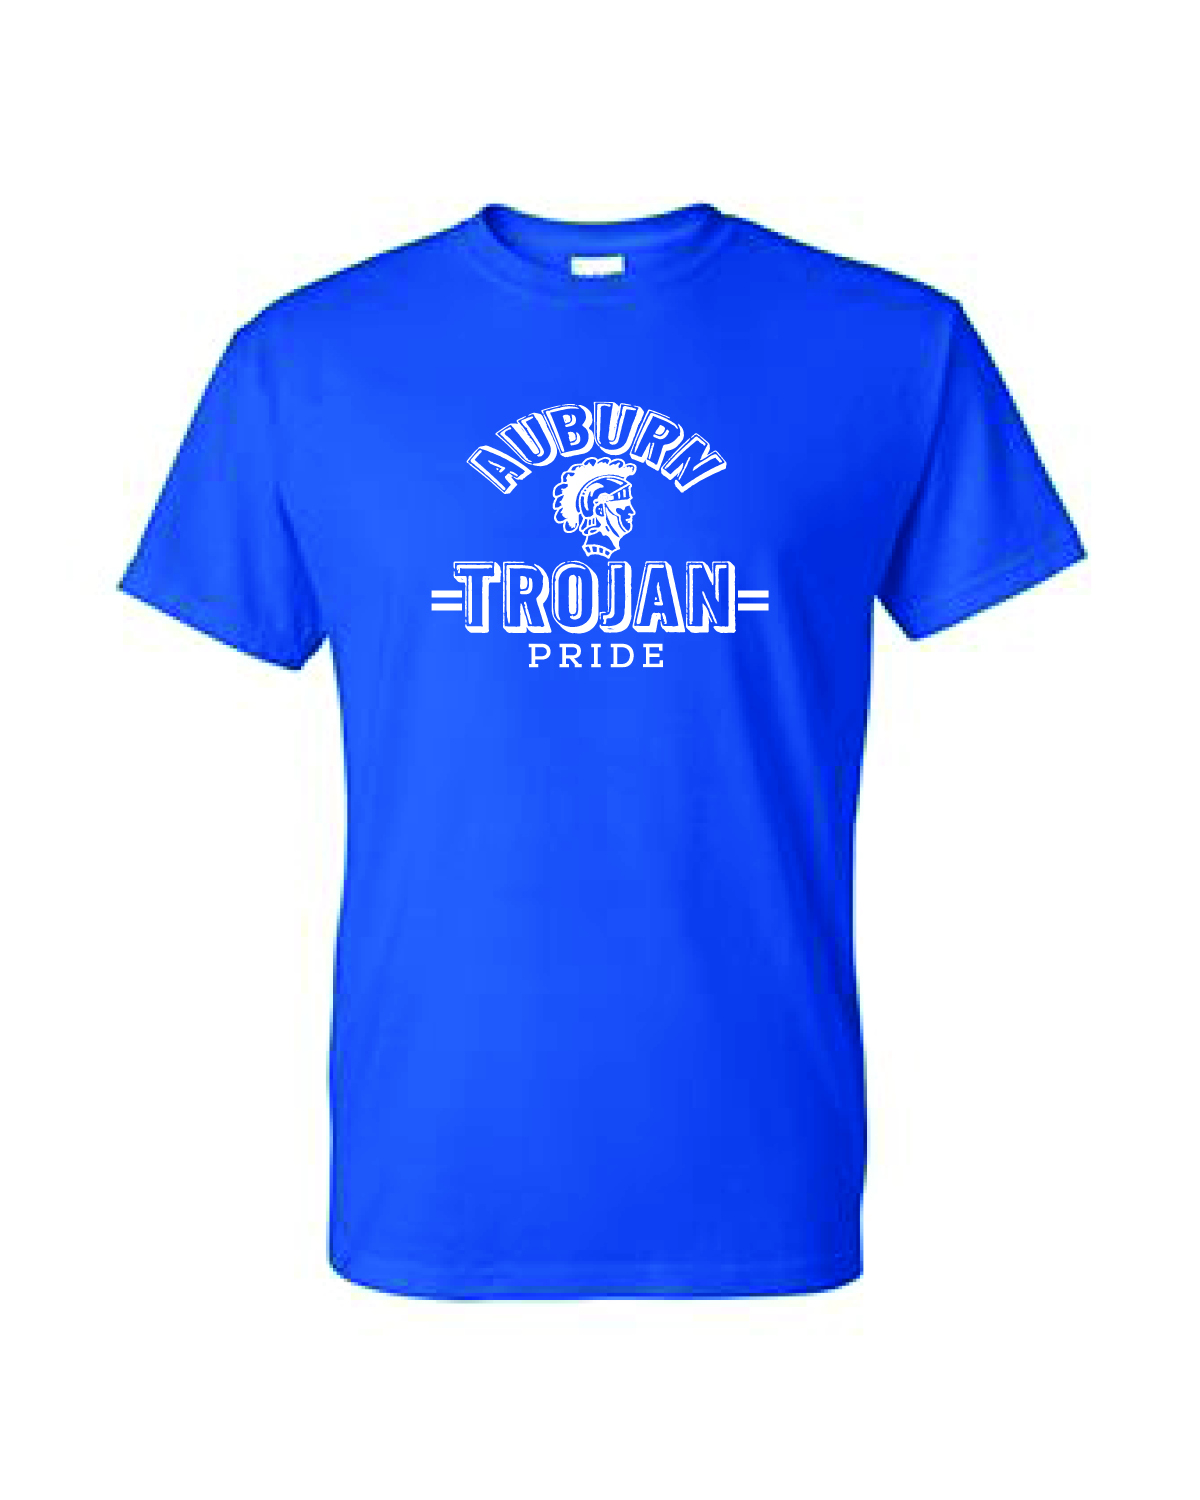 Auburn Trojan Pride - Blue (ADULT AND YOUTH AVAILABLE)